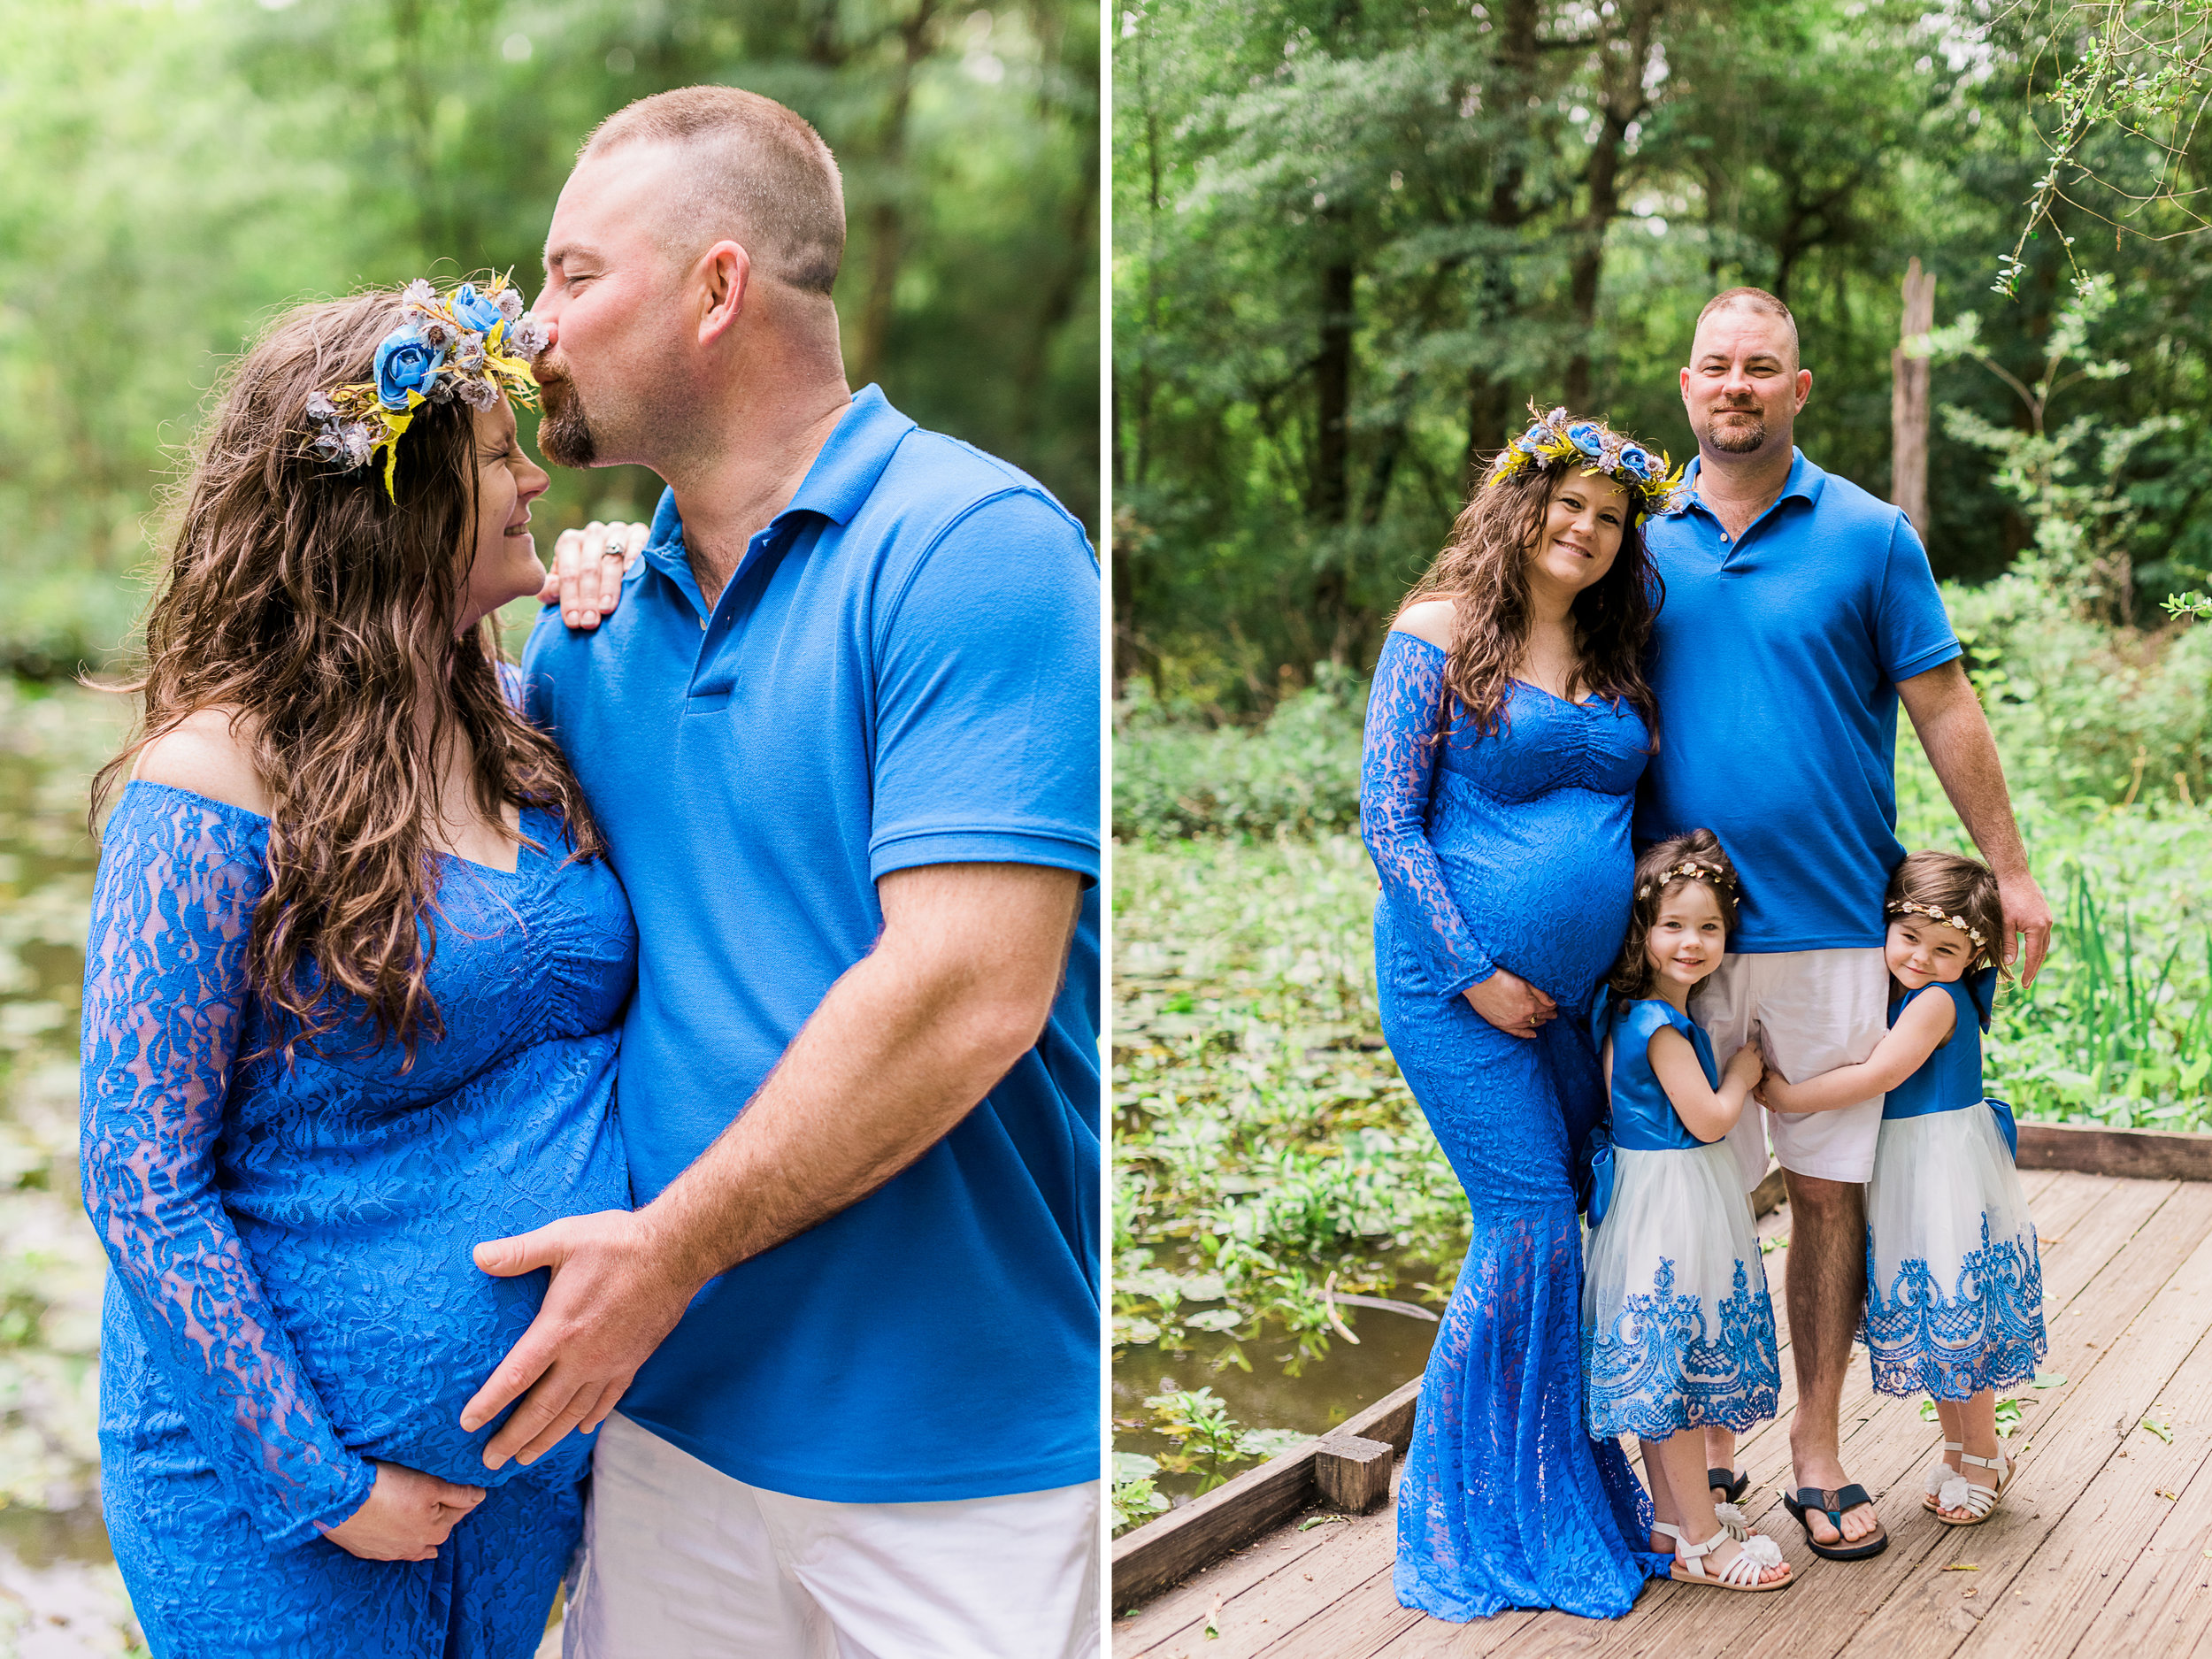 BrassandVeilCreative_Maternity_HoustonMaternityPhotographer_Houston_Arboretum5.jpg